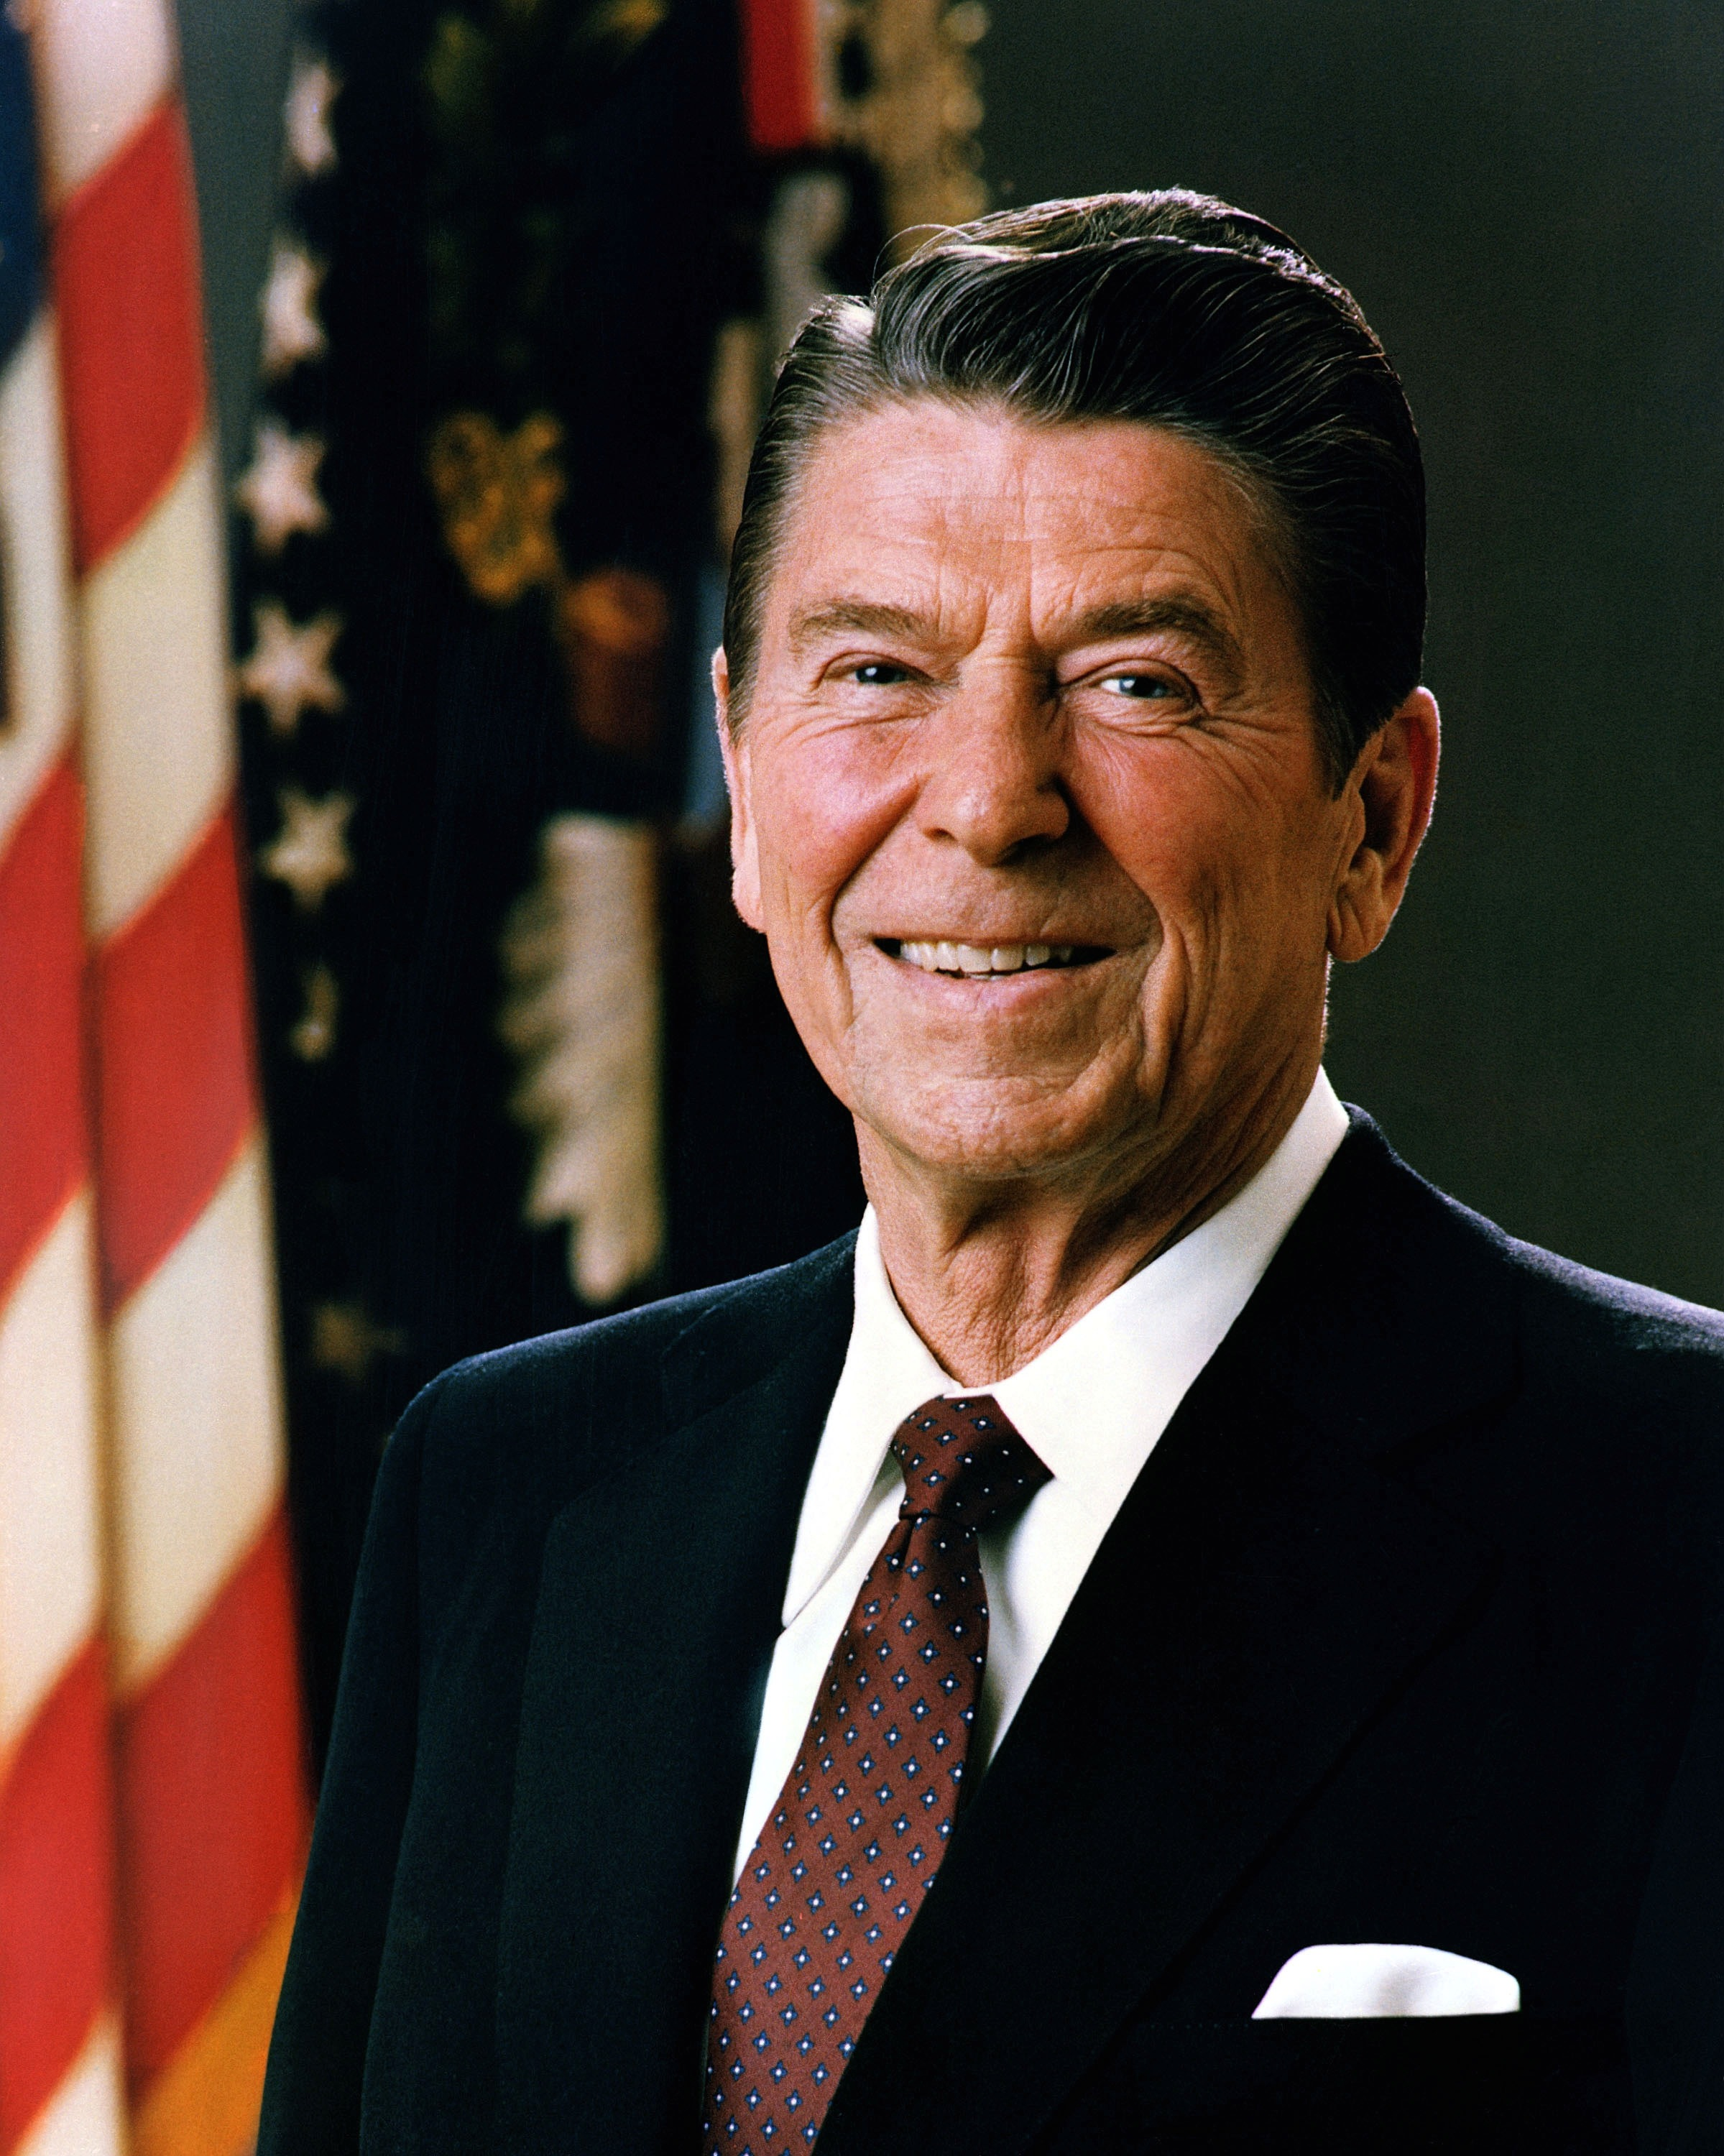 List of Presidents of the United States (EEC) - Alternative History